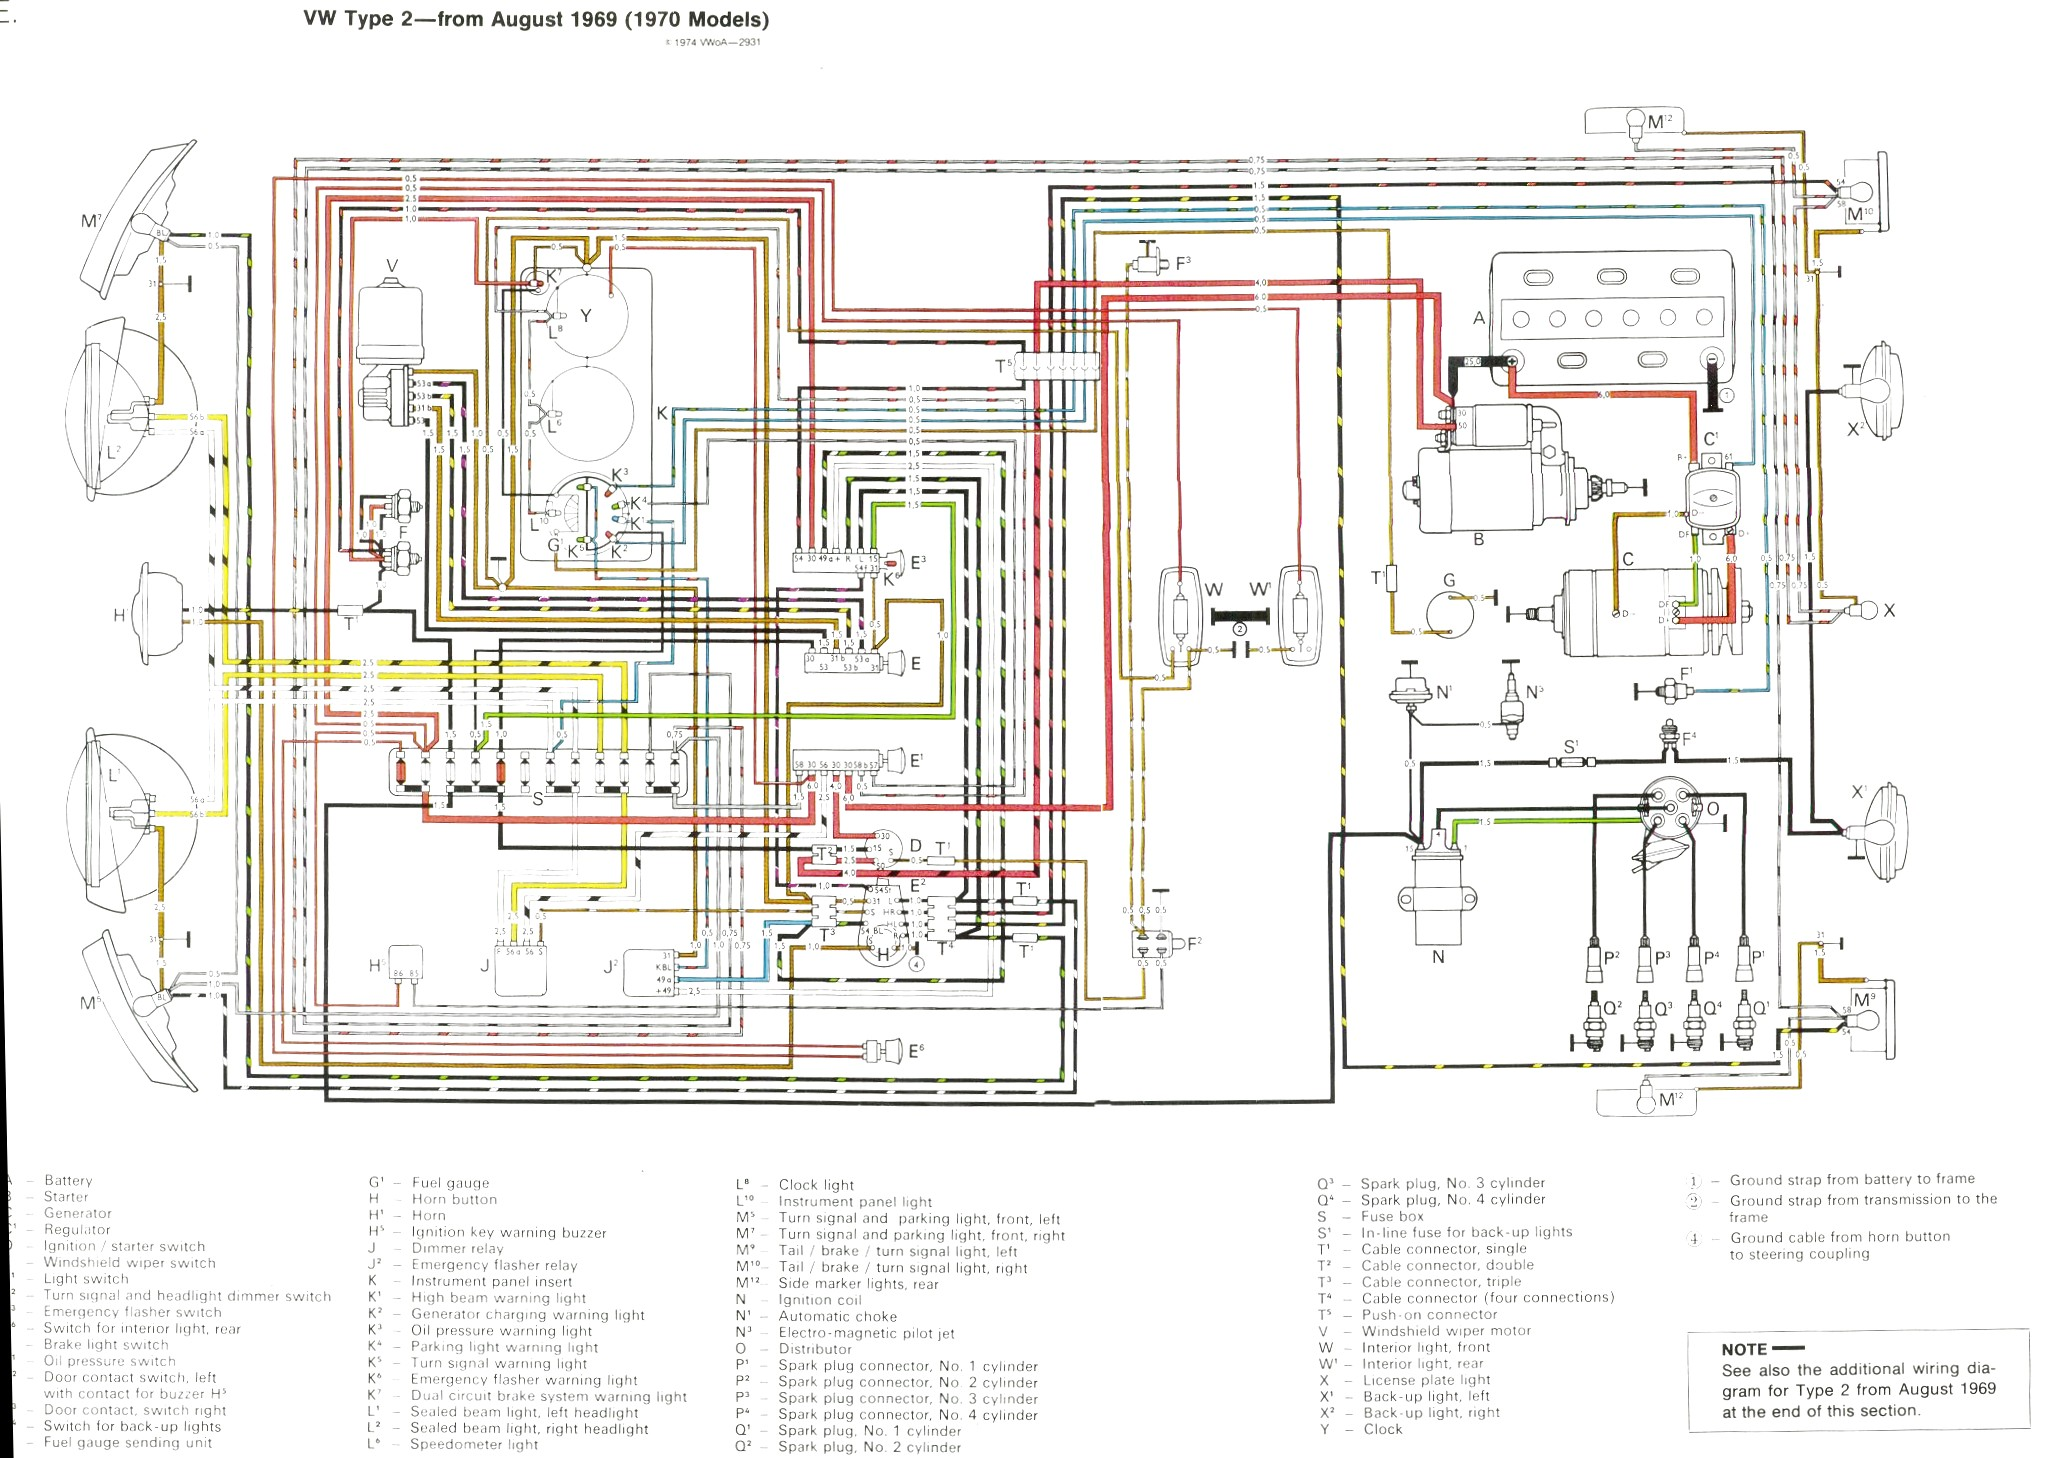 vintagebus com vw bus (and other) wiring diagrams vanagon dash wiring com vw bus (and other) wiring diagrams